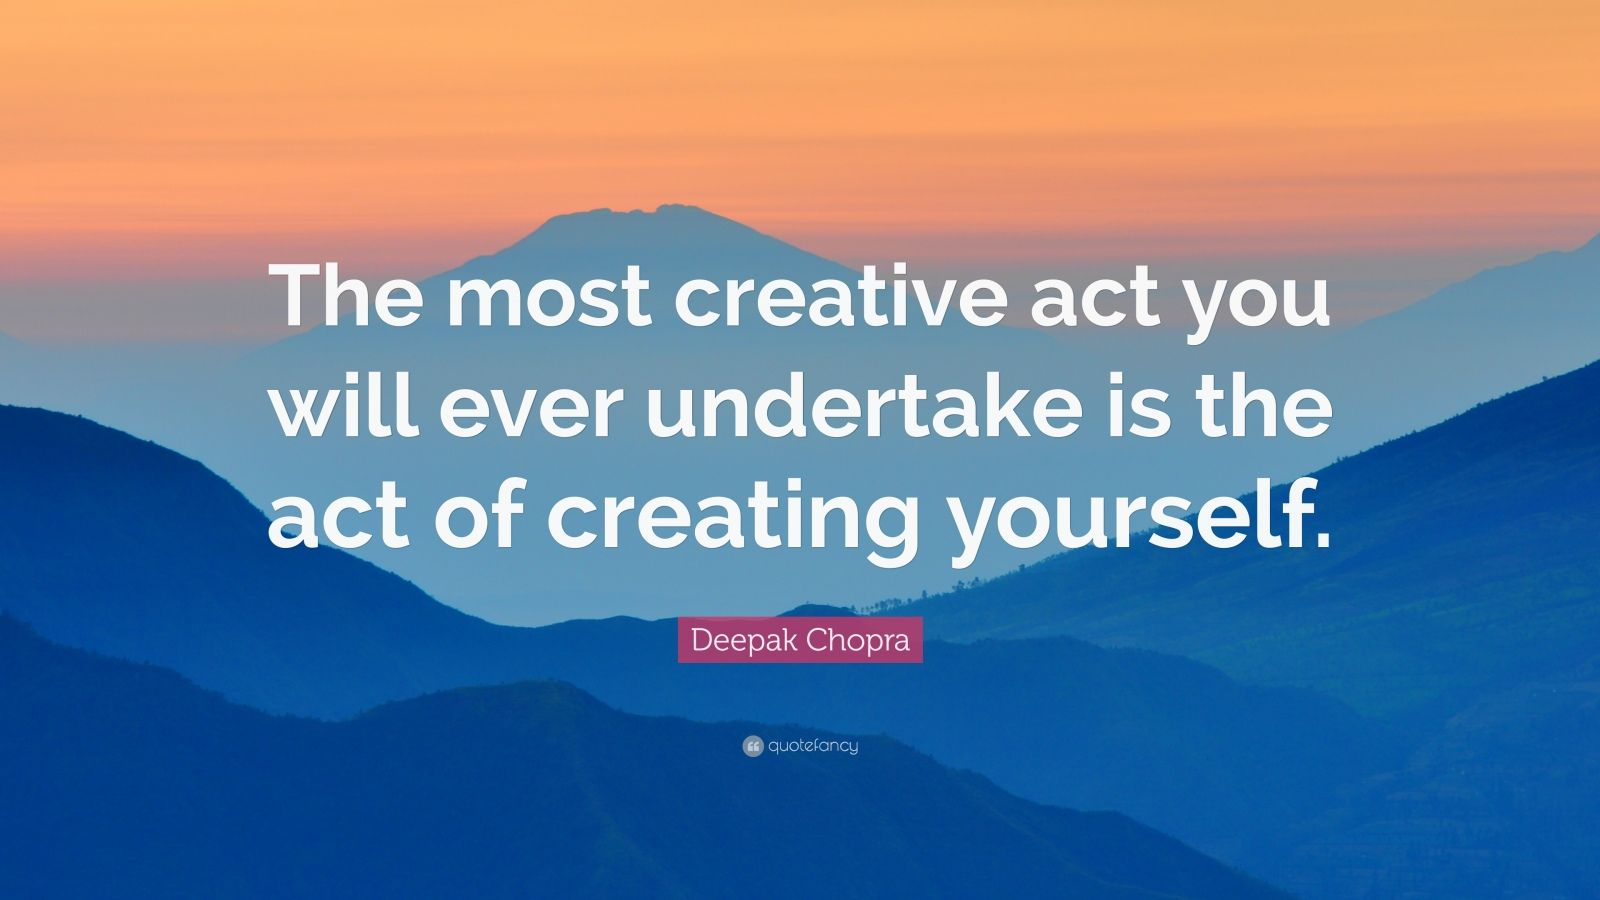 deepak chopra quote   u201cthe most creative act you will ever undertake is the act of creating